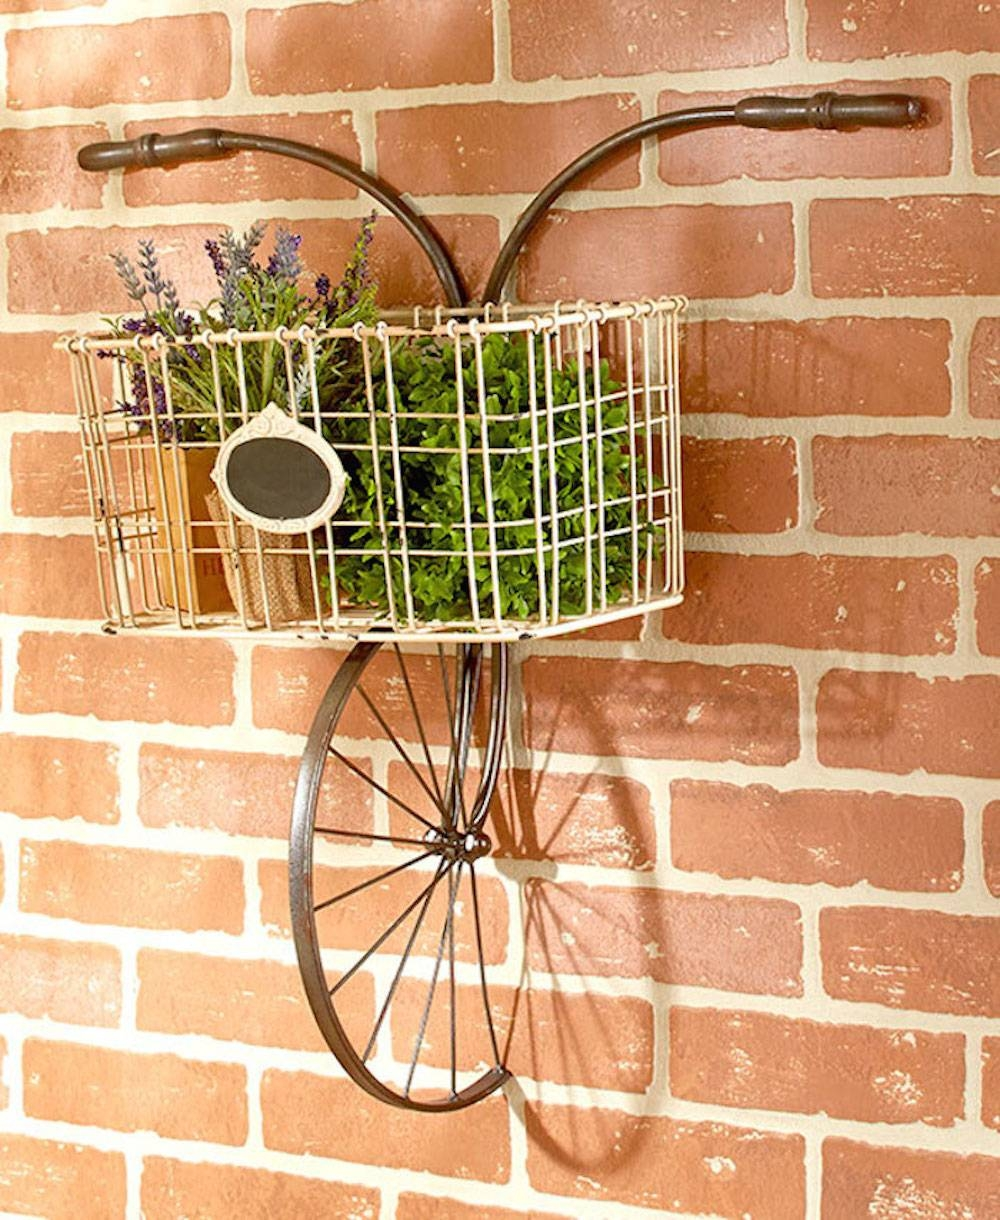 Shabby Vintage Chic Wall Decor Bicycle Rack Plaque Metal Wall Art Pertaining To Most Recently Released Shabby Chic Wall Art (View 21 of 30)